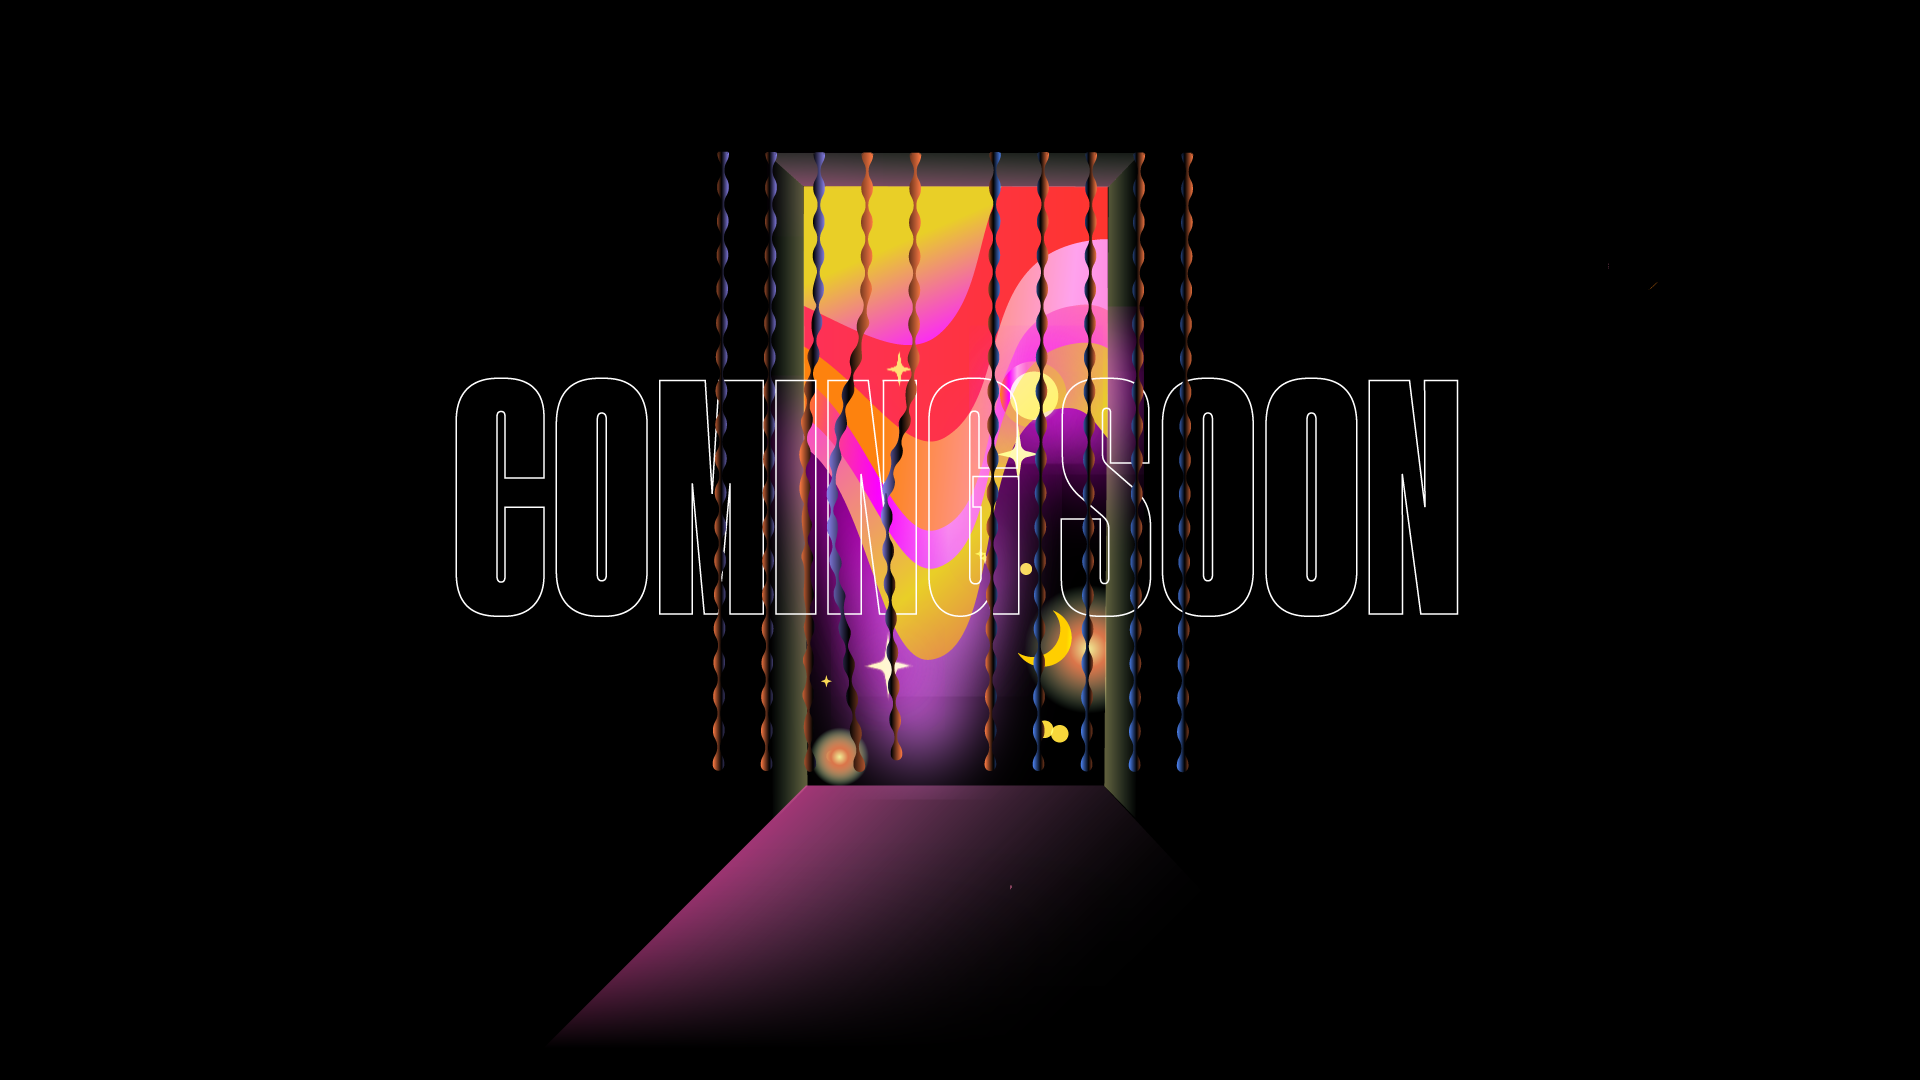 29R-coming-soon-1920x1080.png